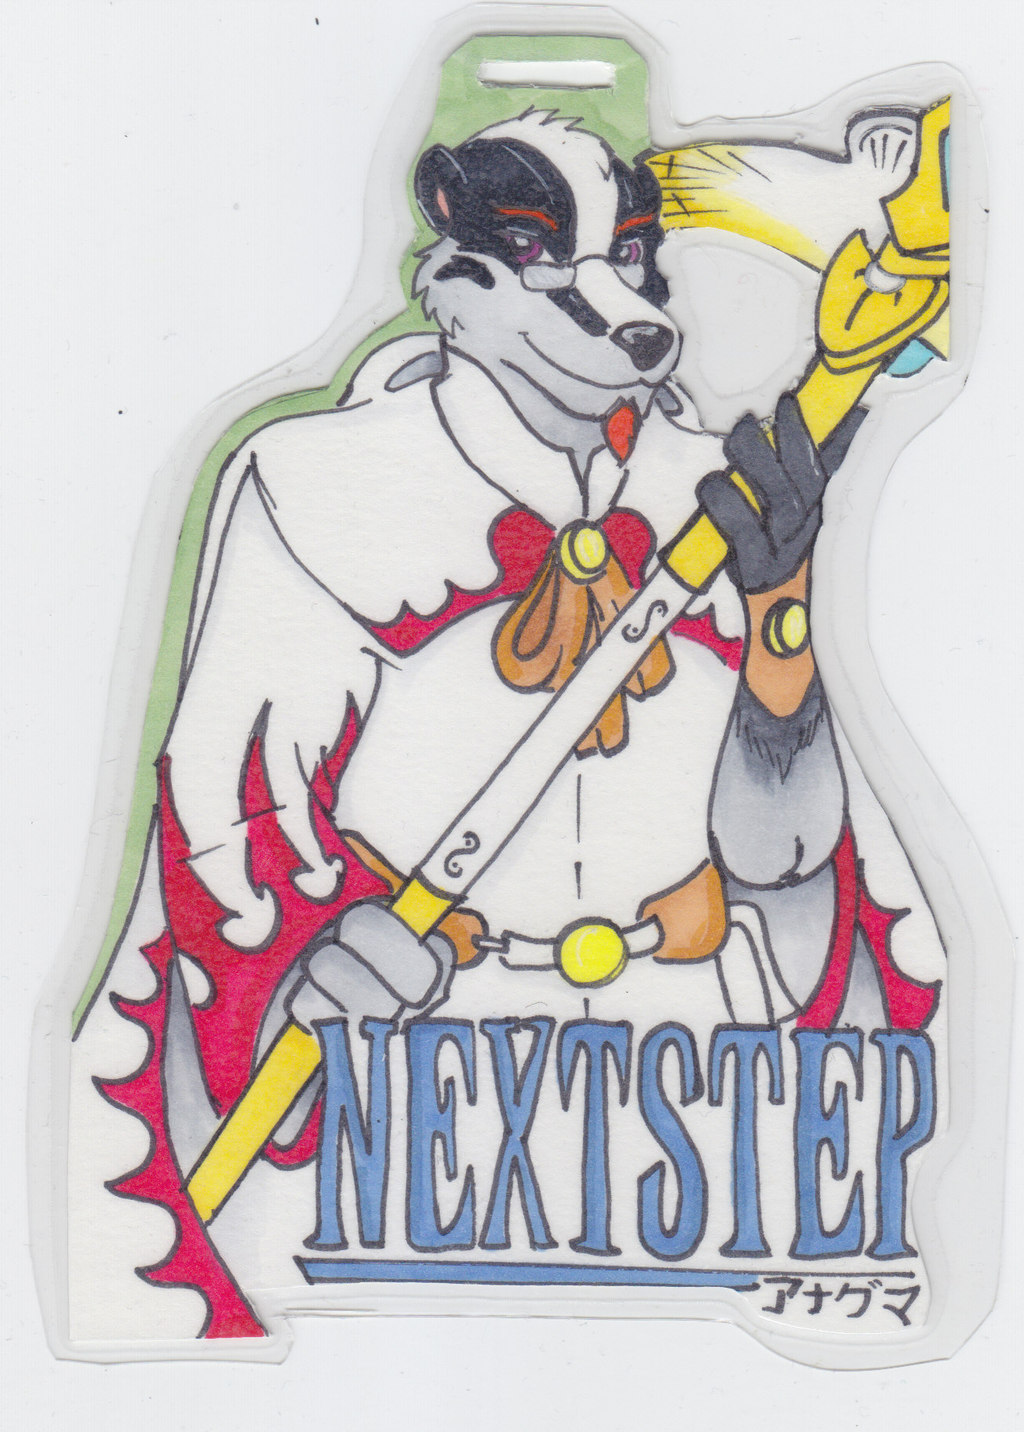 Most recent image: FC2014 Badge - Nextstep the White Mage